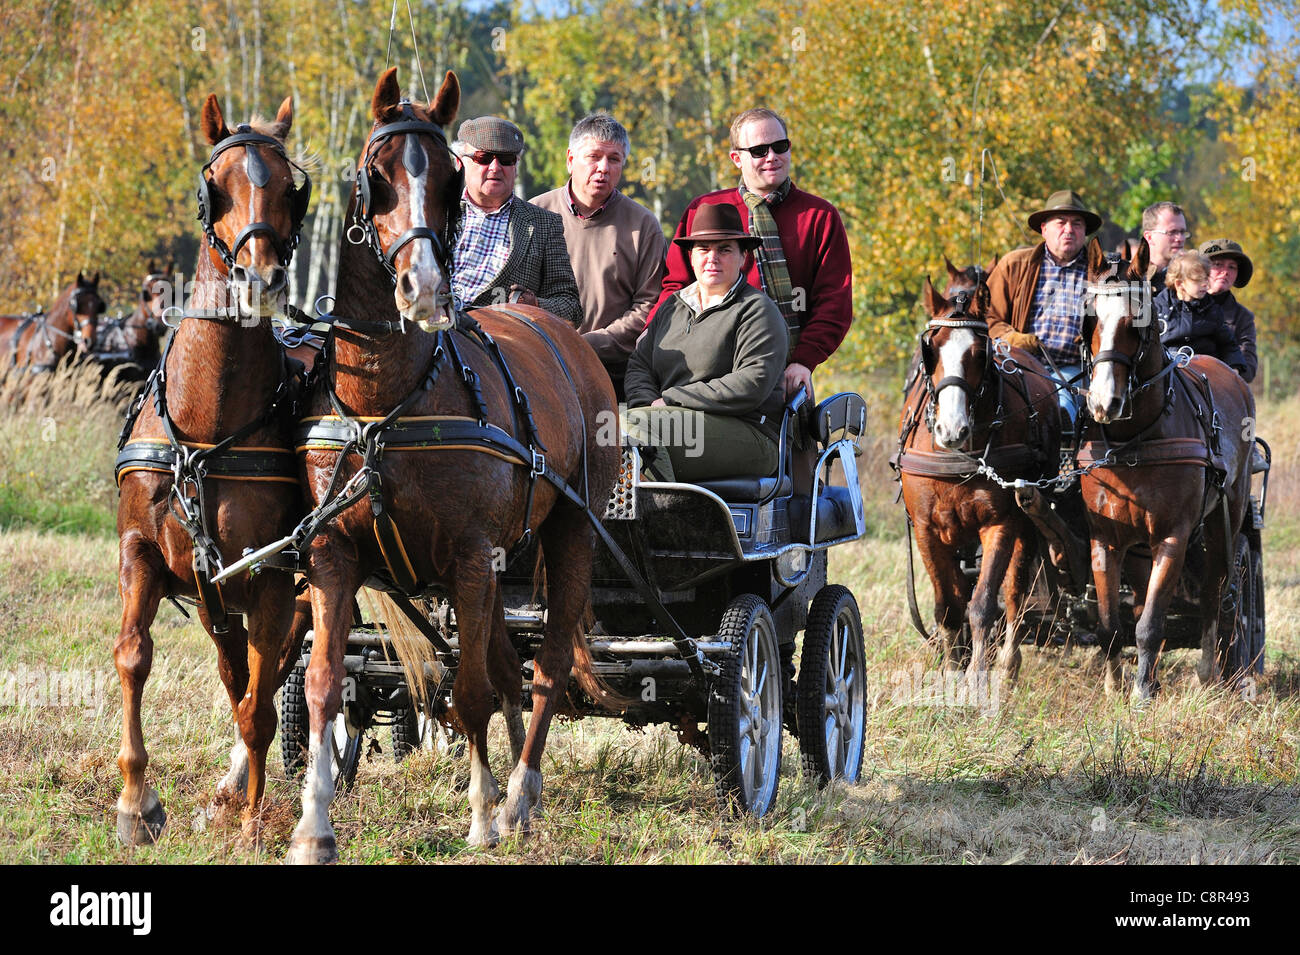 Hunting carriages during Saint Hubert / Saint Hubertus commemoration at drag hunting demonstration in autumn, Europe - Stock Image